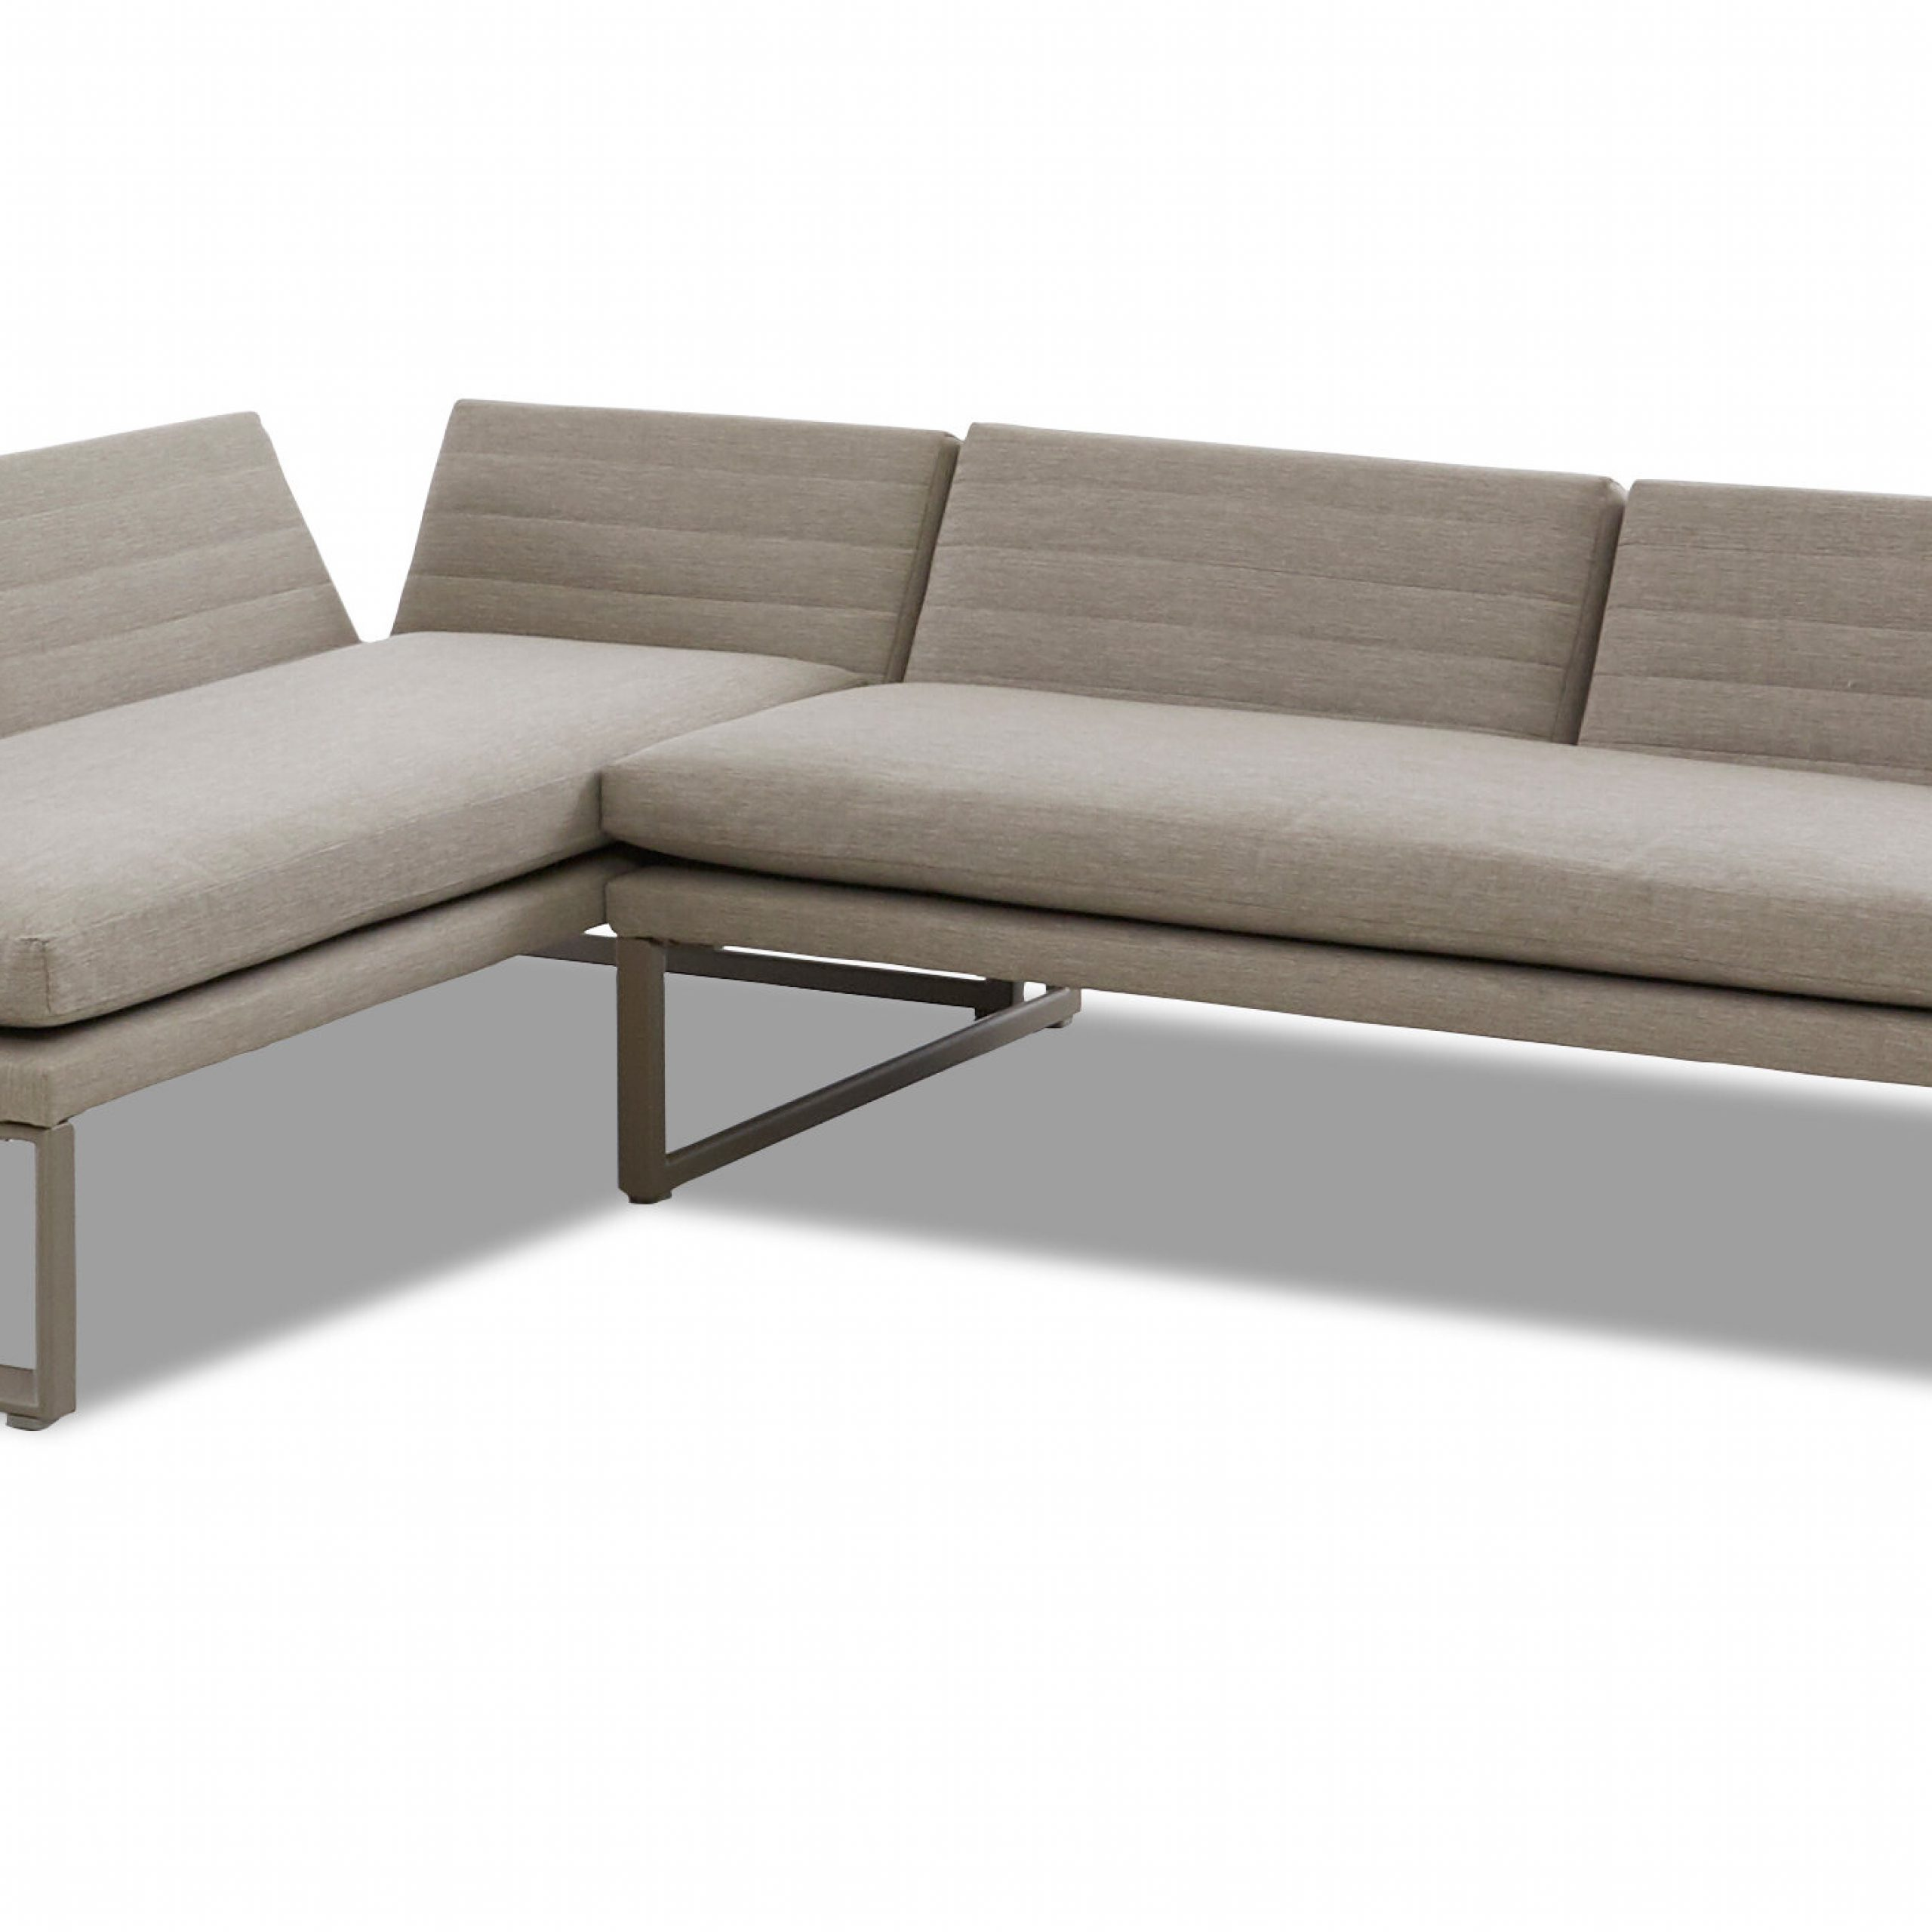 Hetton Patio Sectional With Sunbrella Cushions For Latest Brecht Patio Sectionals With Cushions (View 7 of 25)